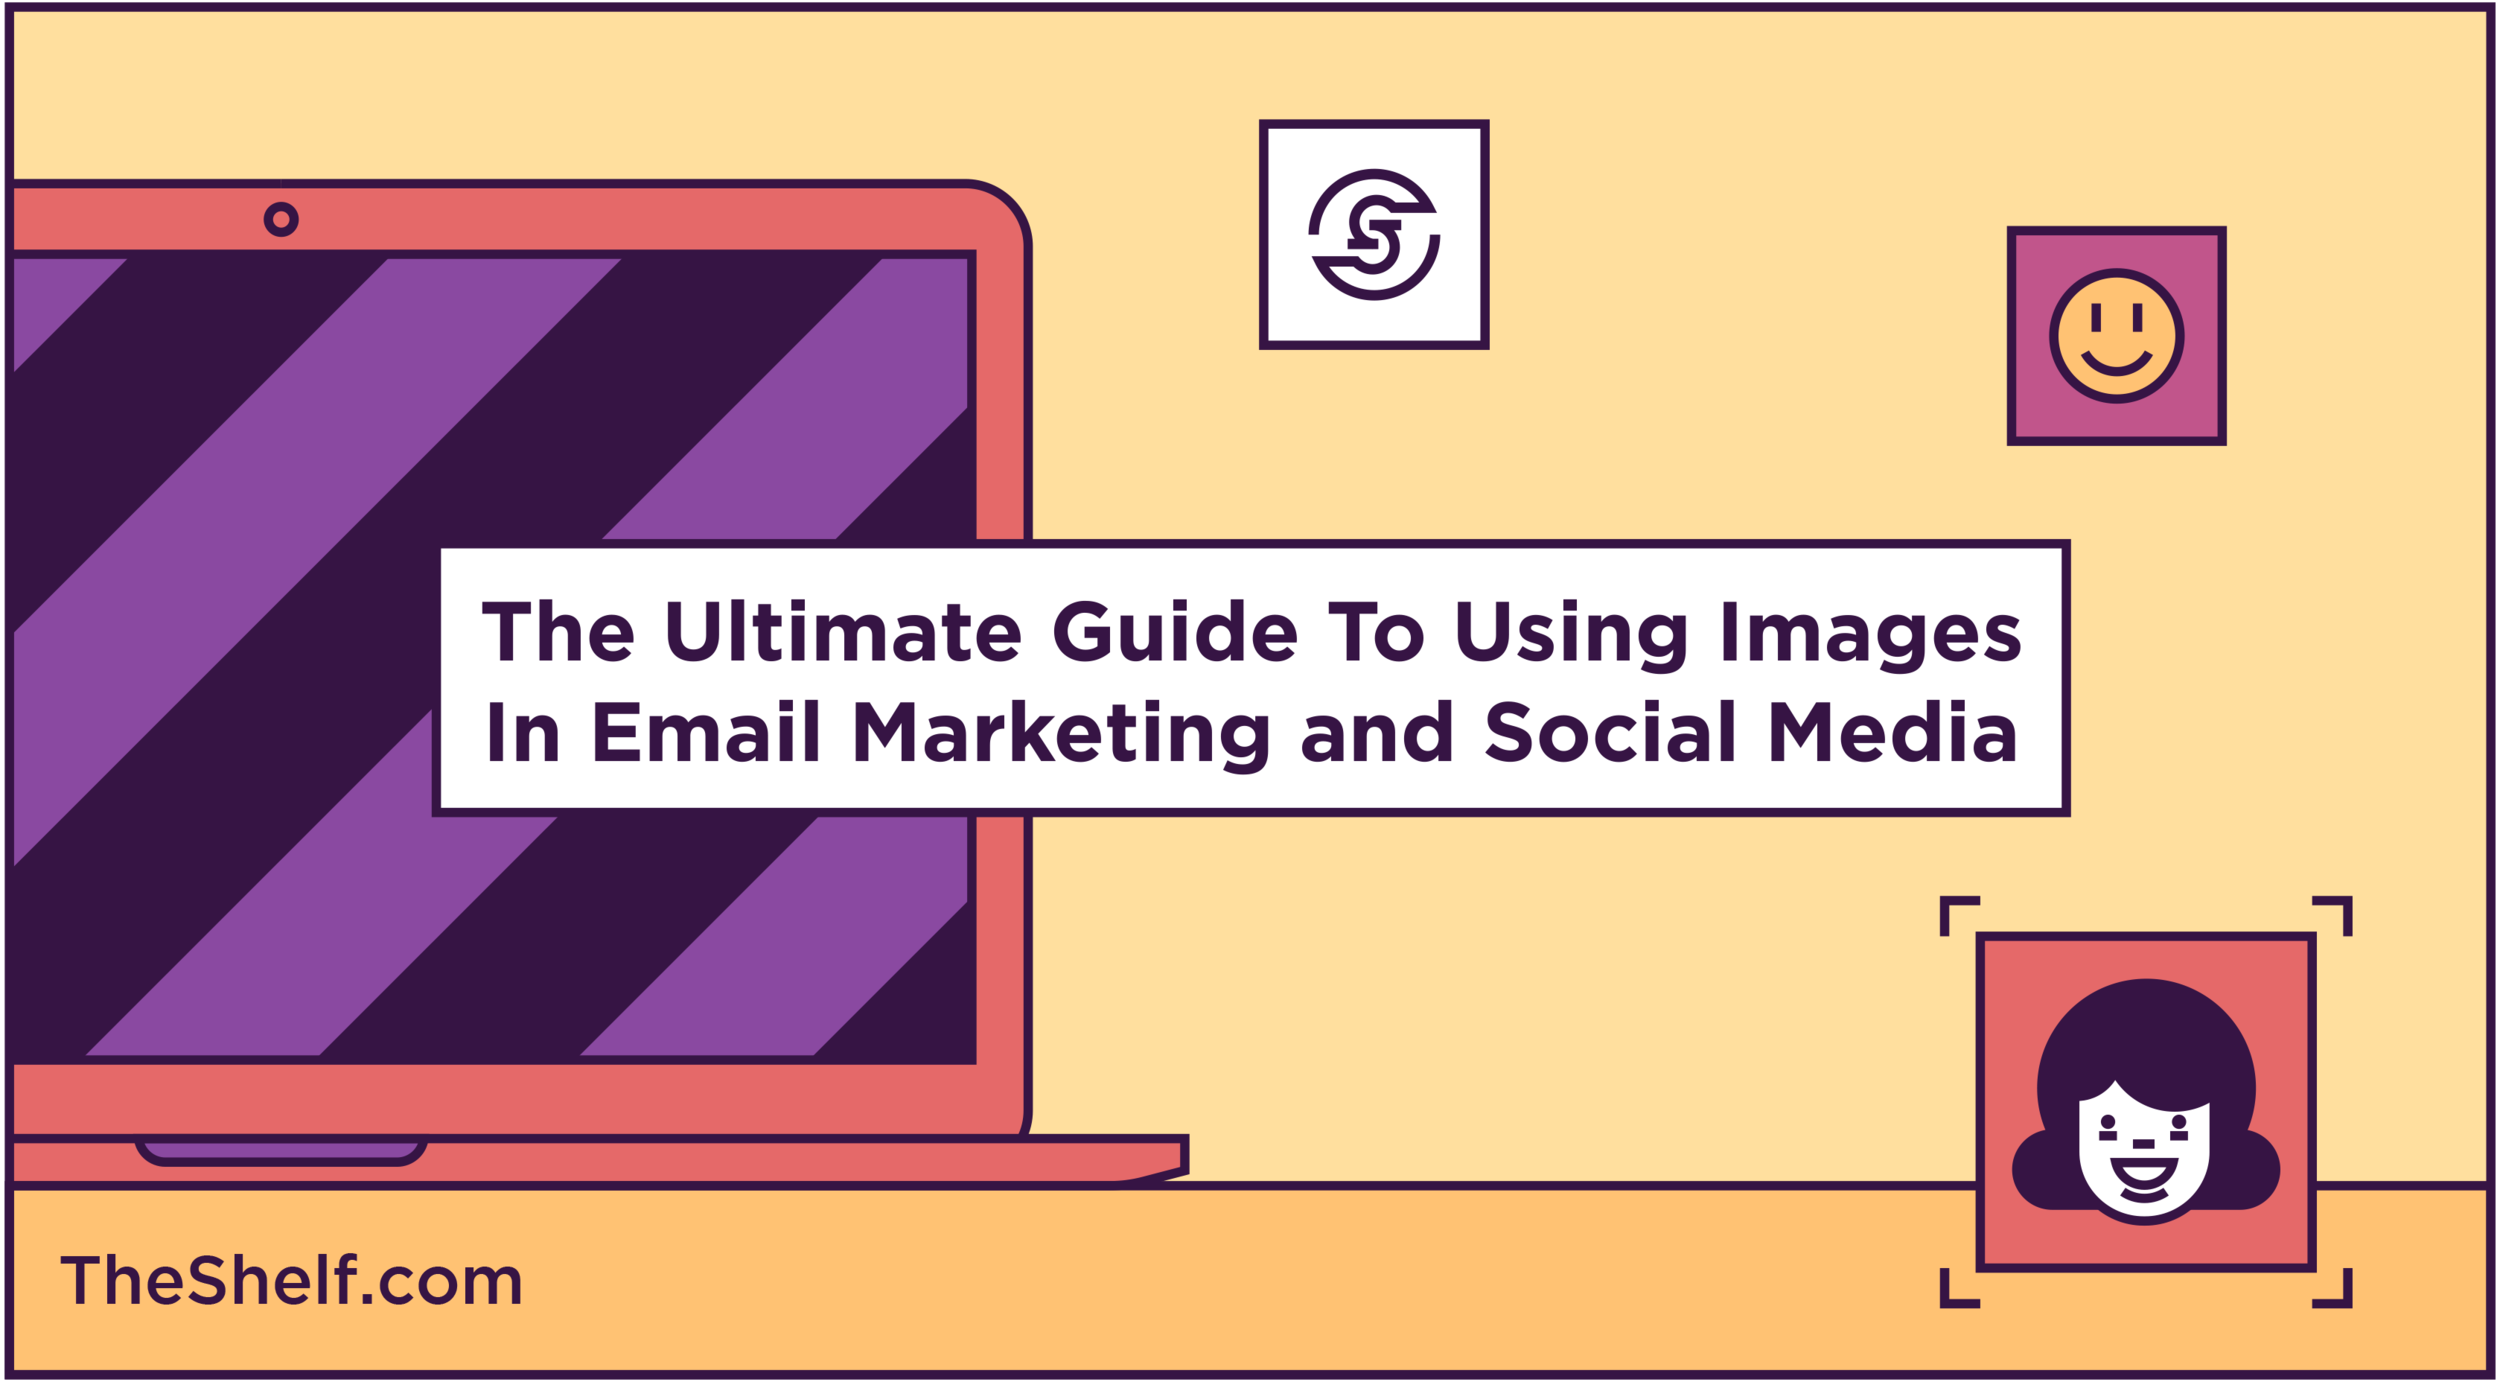 #75 Guide to Using Images_4.png